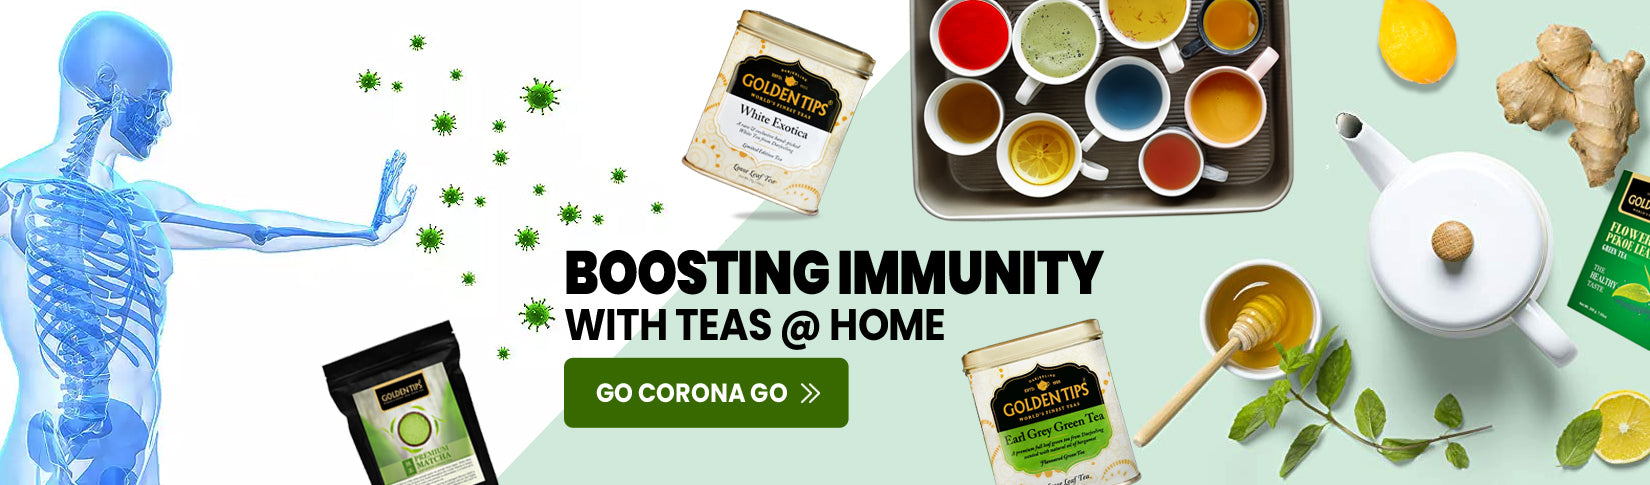 boasting immunity with teas home go corona go